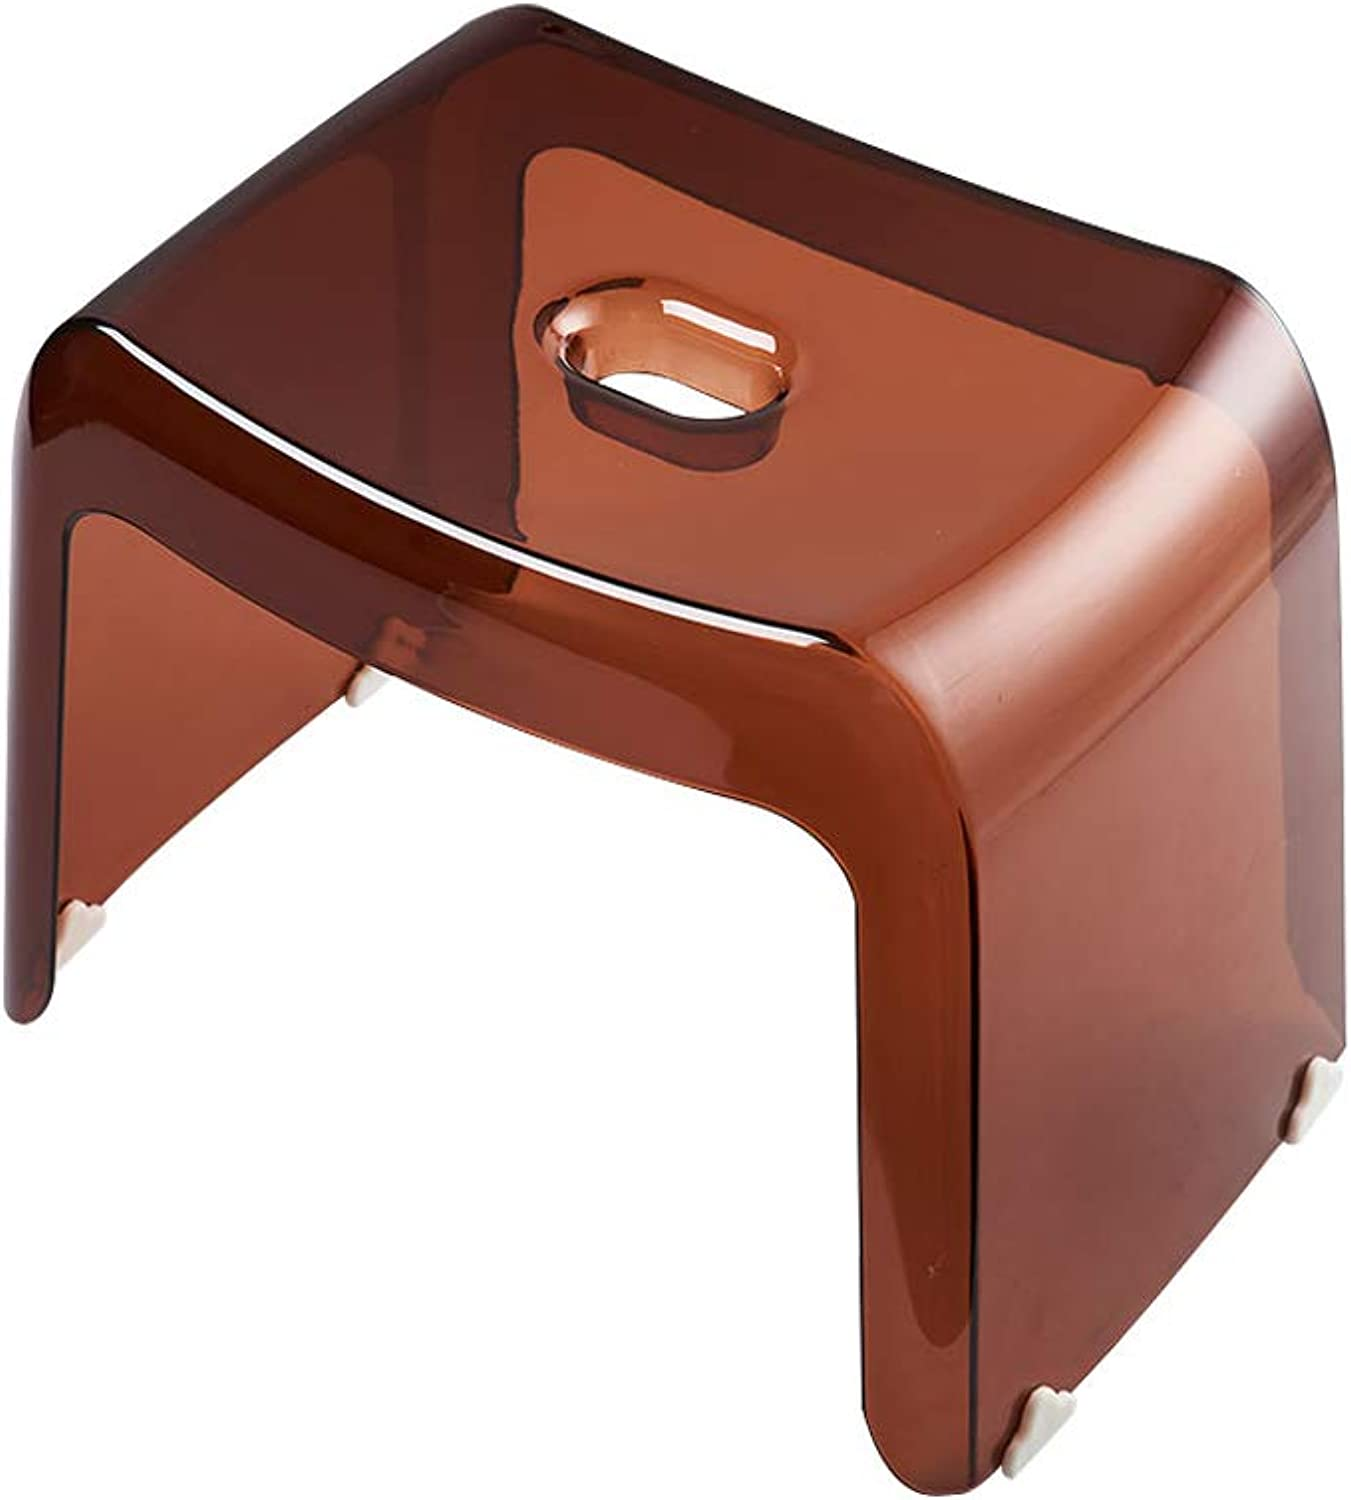 Foot Stool for Baby Kids Training Wash Hands Transparent Plastic Small Seat Non Slip Bathroom Living Room Use (color   Brown, Size   L)